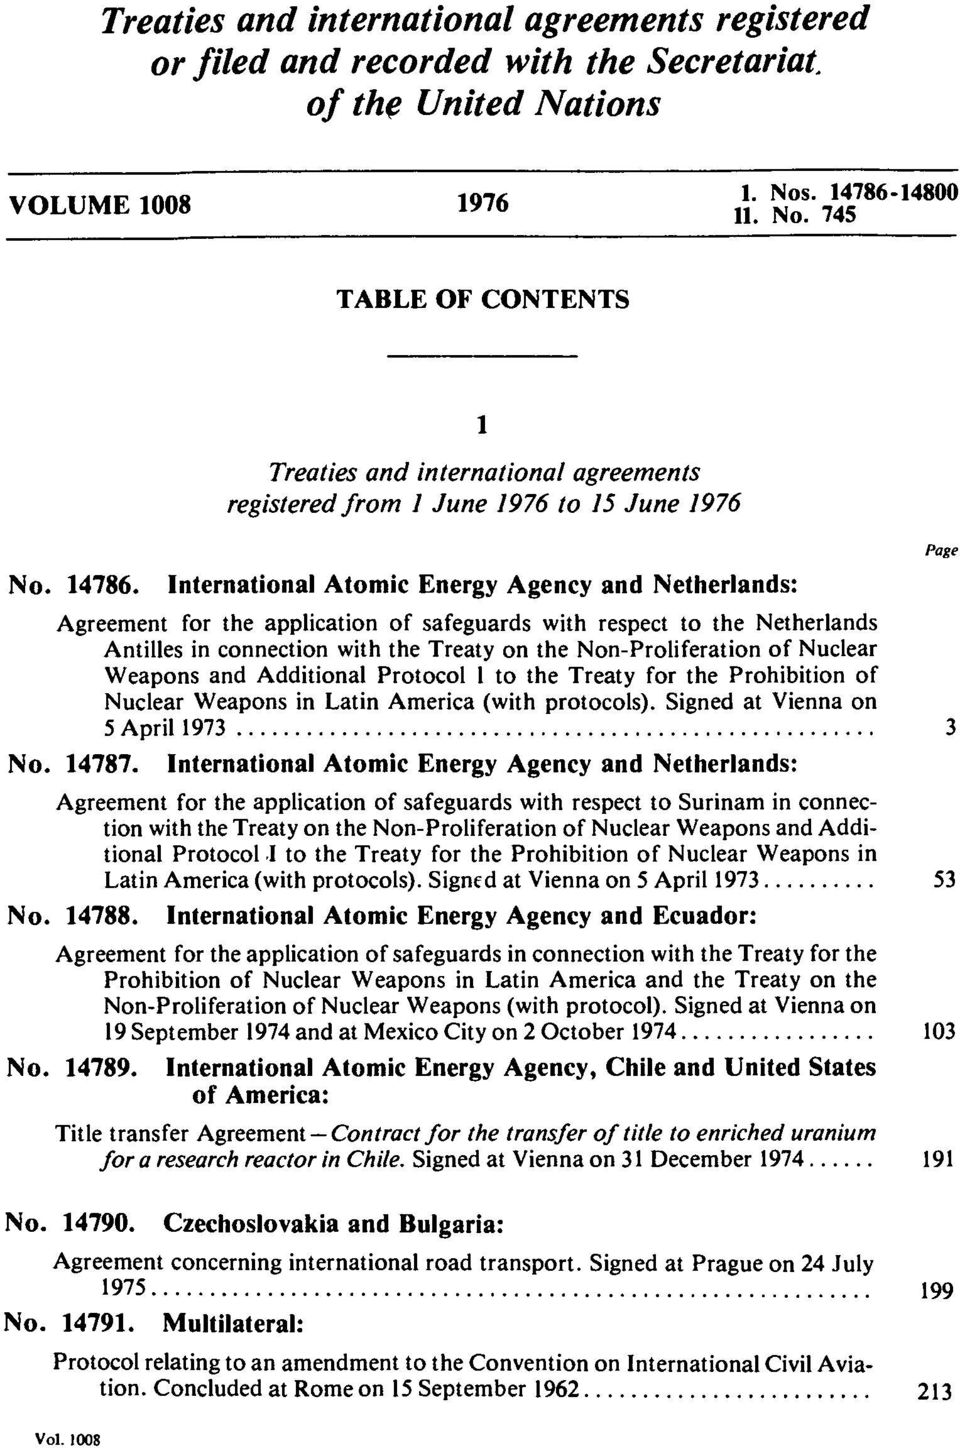 14800 VOLUME 1008 1976 J1. No. 745 TABLE OF CONTENTS I Treaties and international agreements registered from 1 June 1976 to 15 June 1976 No. 14786.